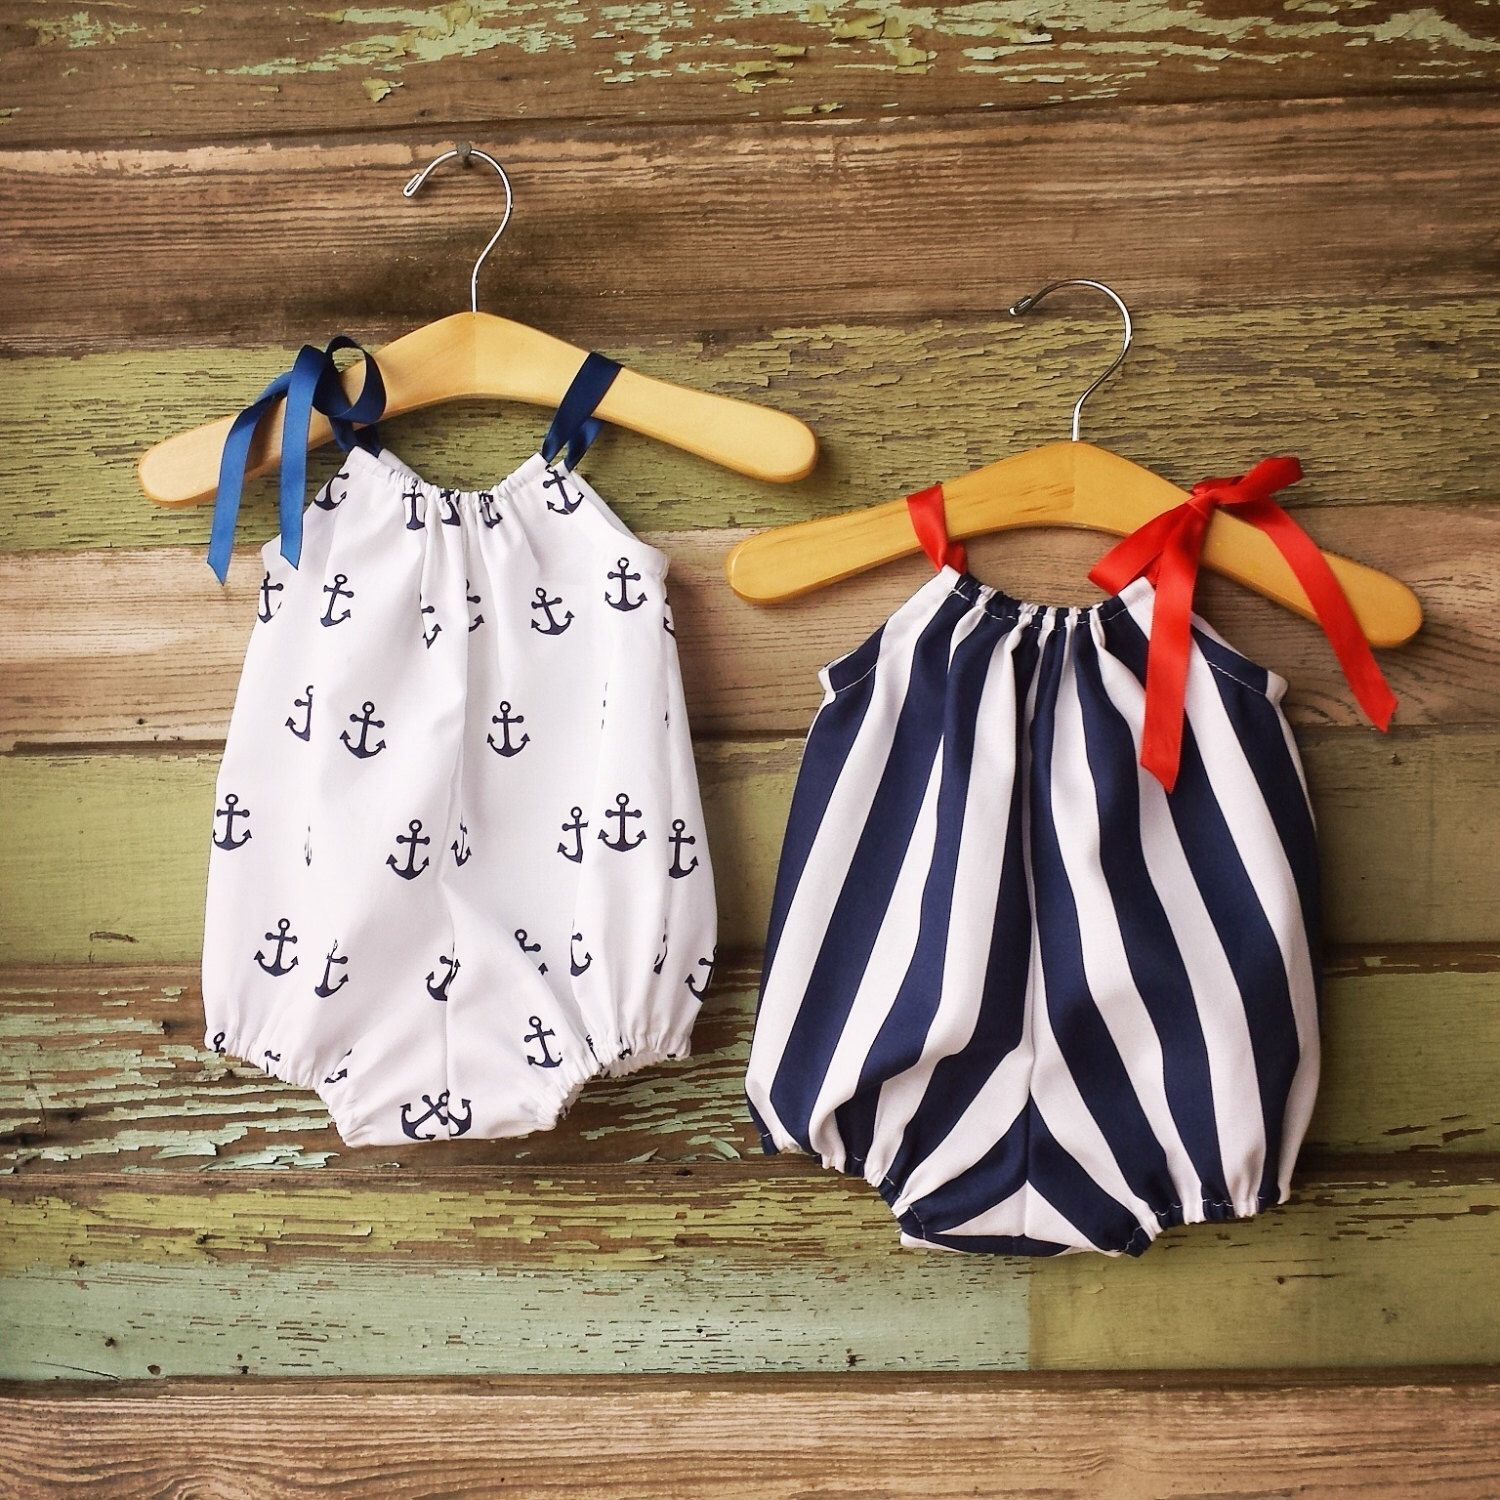 Informations About Beach Bubble Romper, Sunsuit, Anchors, Navy, Summer baby clothes, girls nautical, cake smash outfit, coming home outfit, fourth of july Pin  You can easily use my profile to examine different pin ... #anchors #Baby #Baby girl fashion #beach #bubble #Cake #Clothes #coming #fourth #Girls #Girls fashion kids #Home #July #Kid styles #Kid swag #Little diva #Little girl outfits #nautical #Navy #Outfit #romper #smash #summer #sunsuit #Toddler girl clothing #Toddler girls fashion